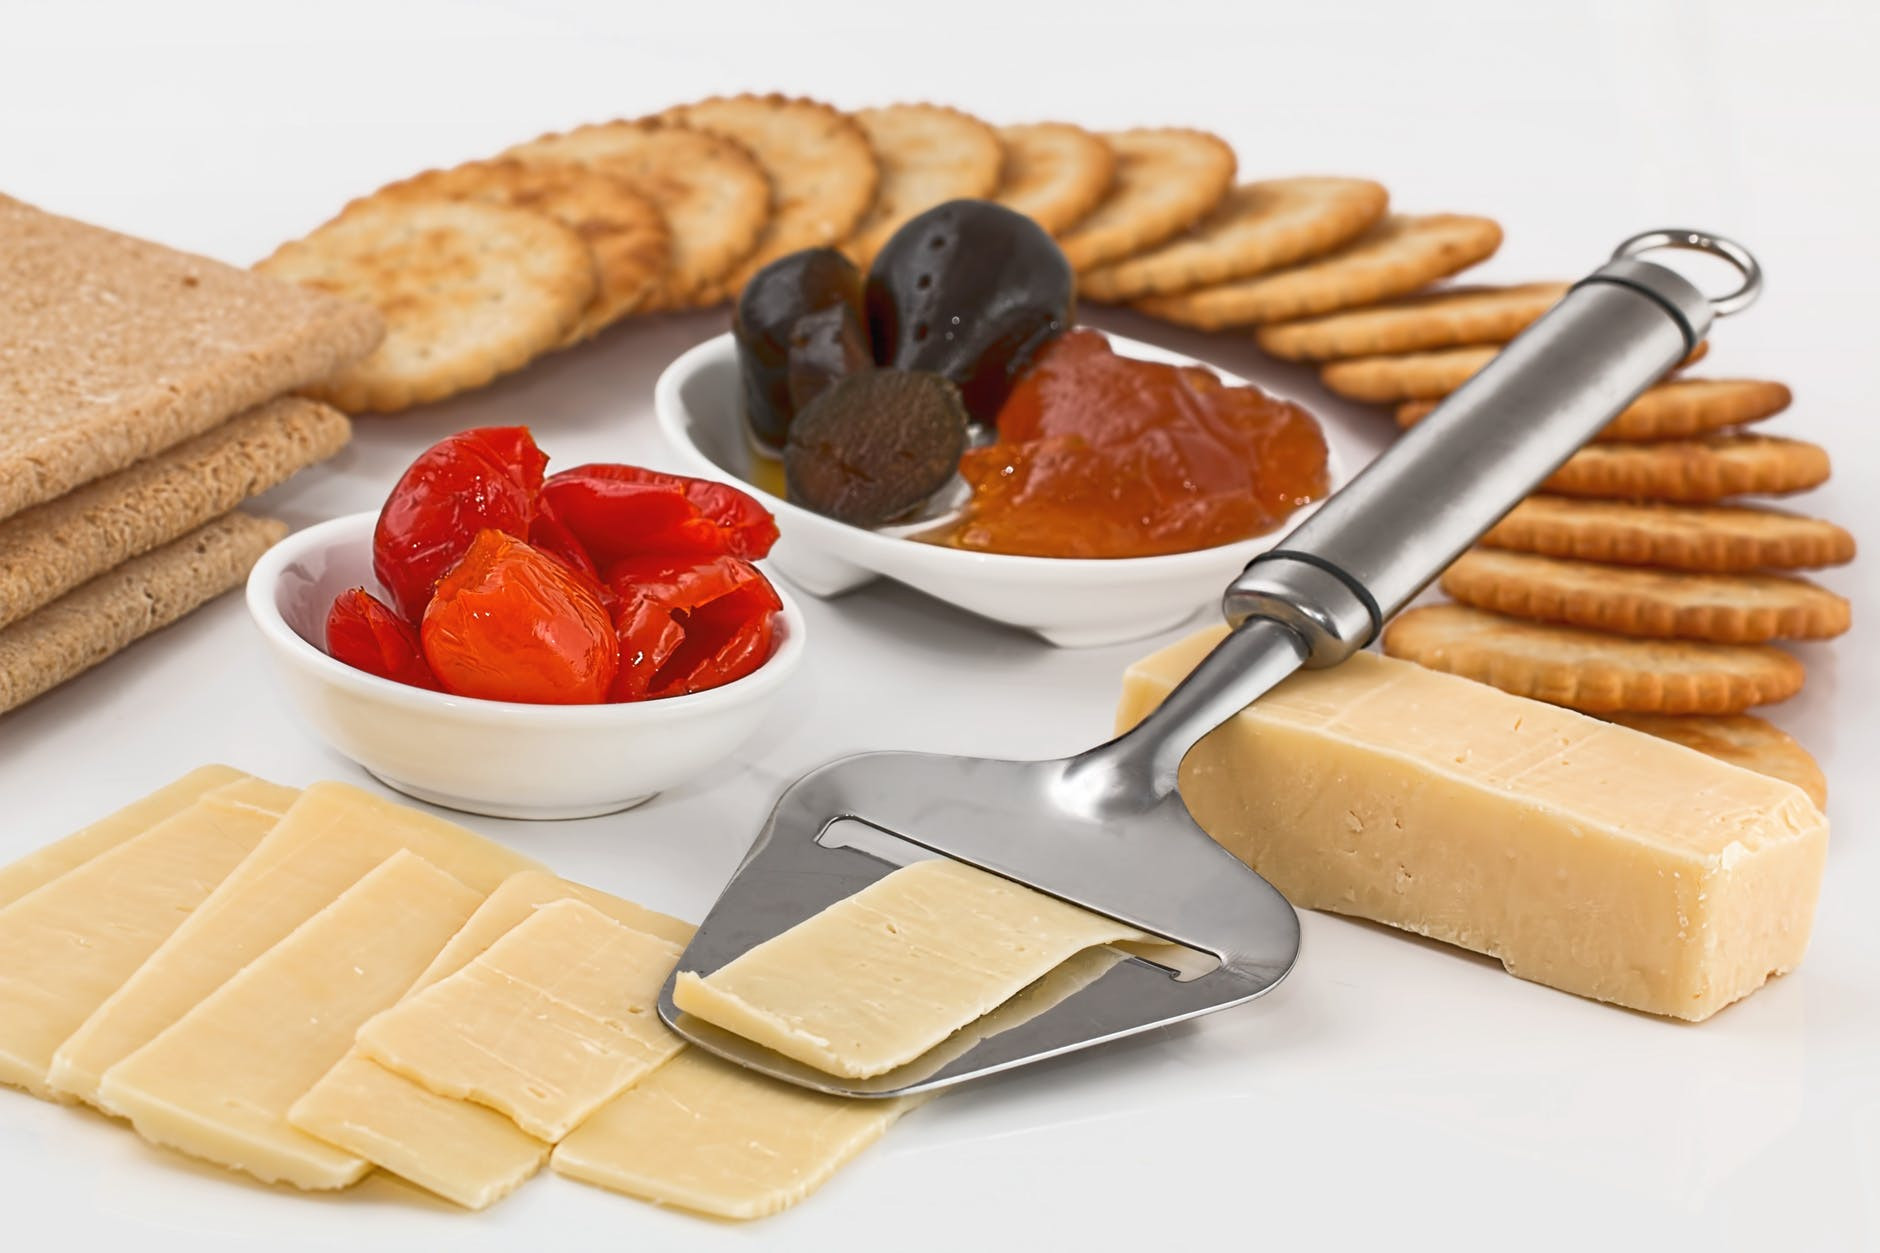 cheese-slicer-crackers-appetizers-dairy-product-37922.jpeg